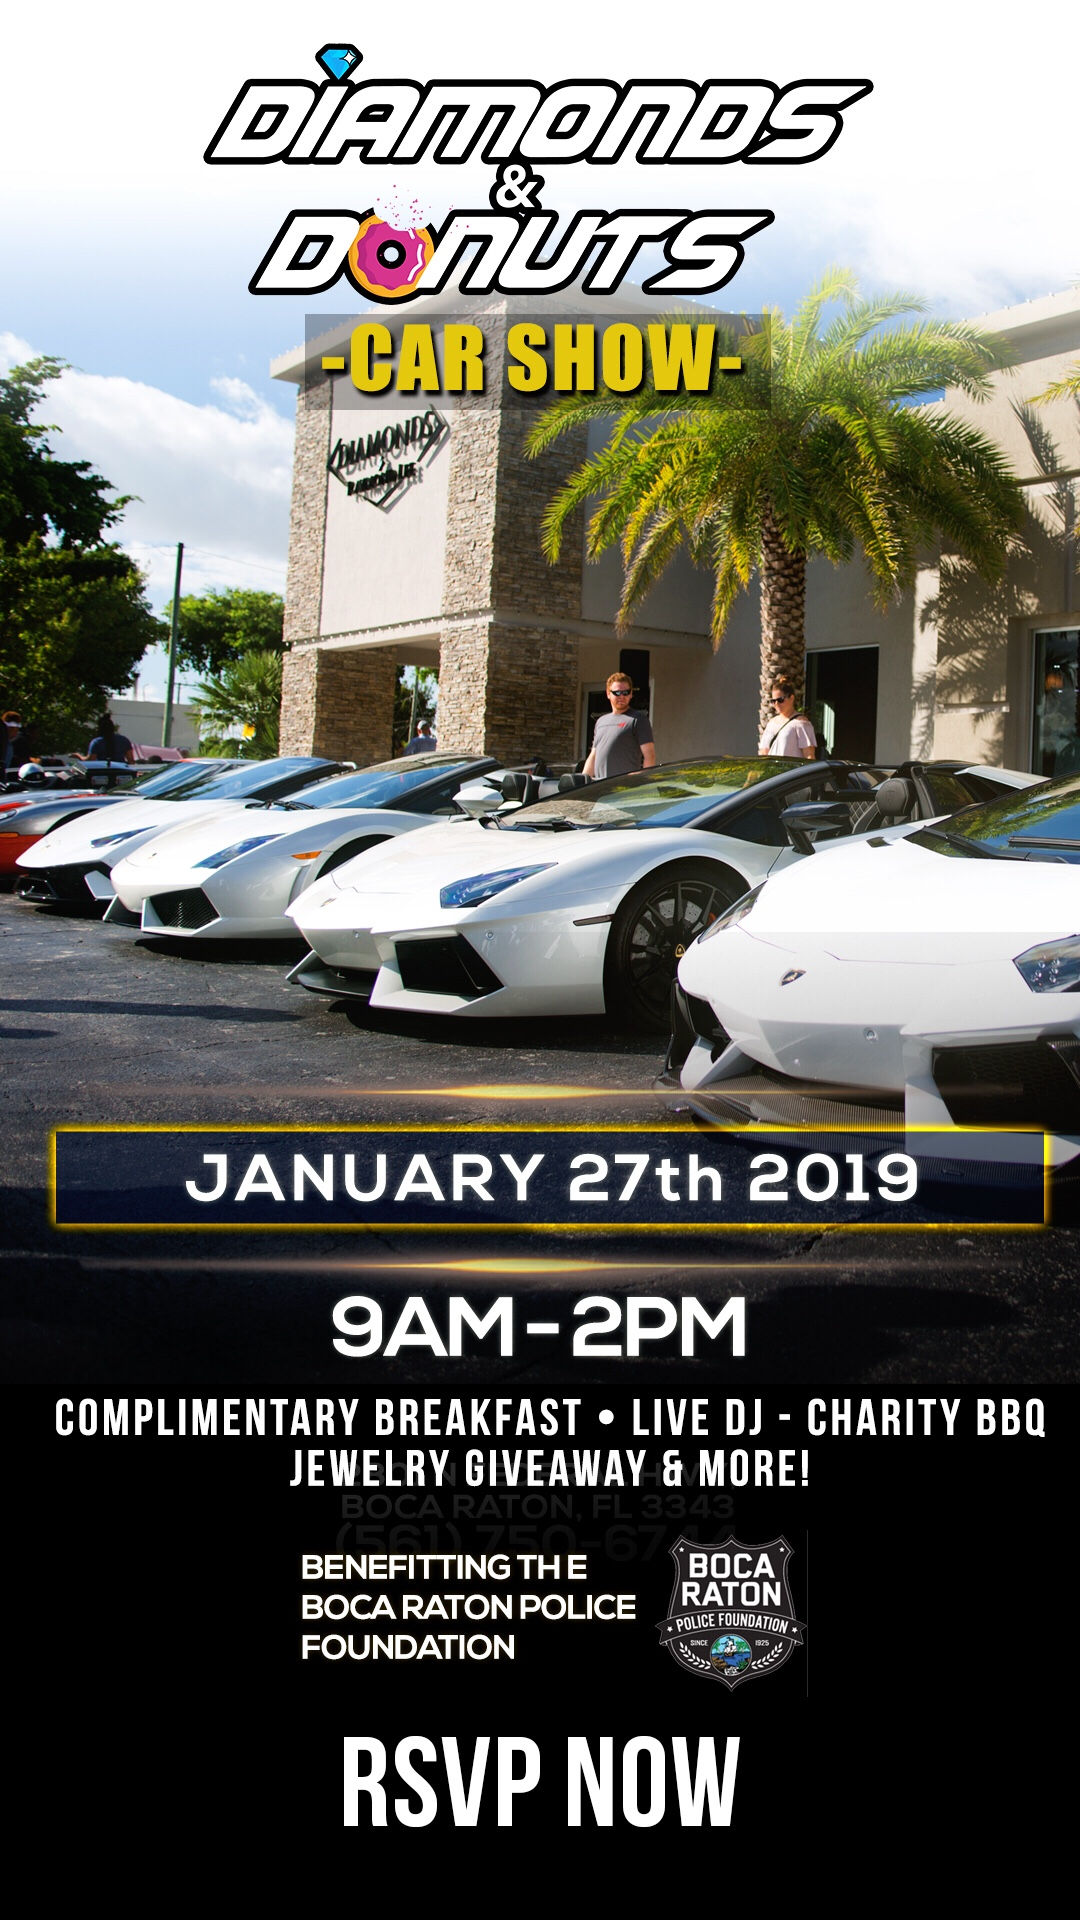 Diamonds & Donuts 2019 Kick Off Car Show!, Palm Beach, Florida, United States